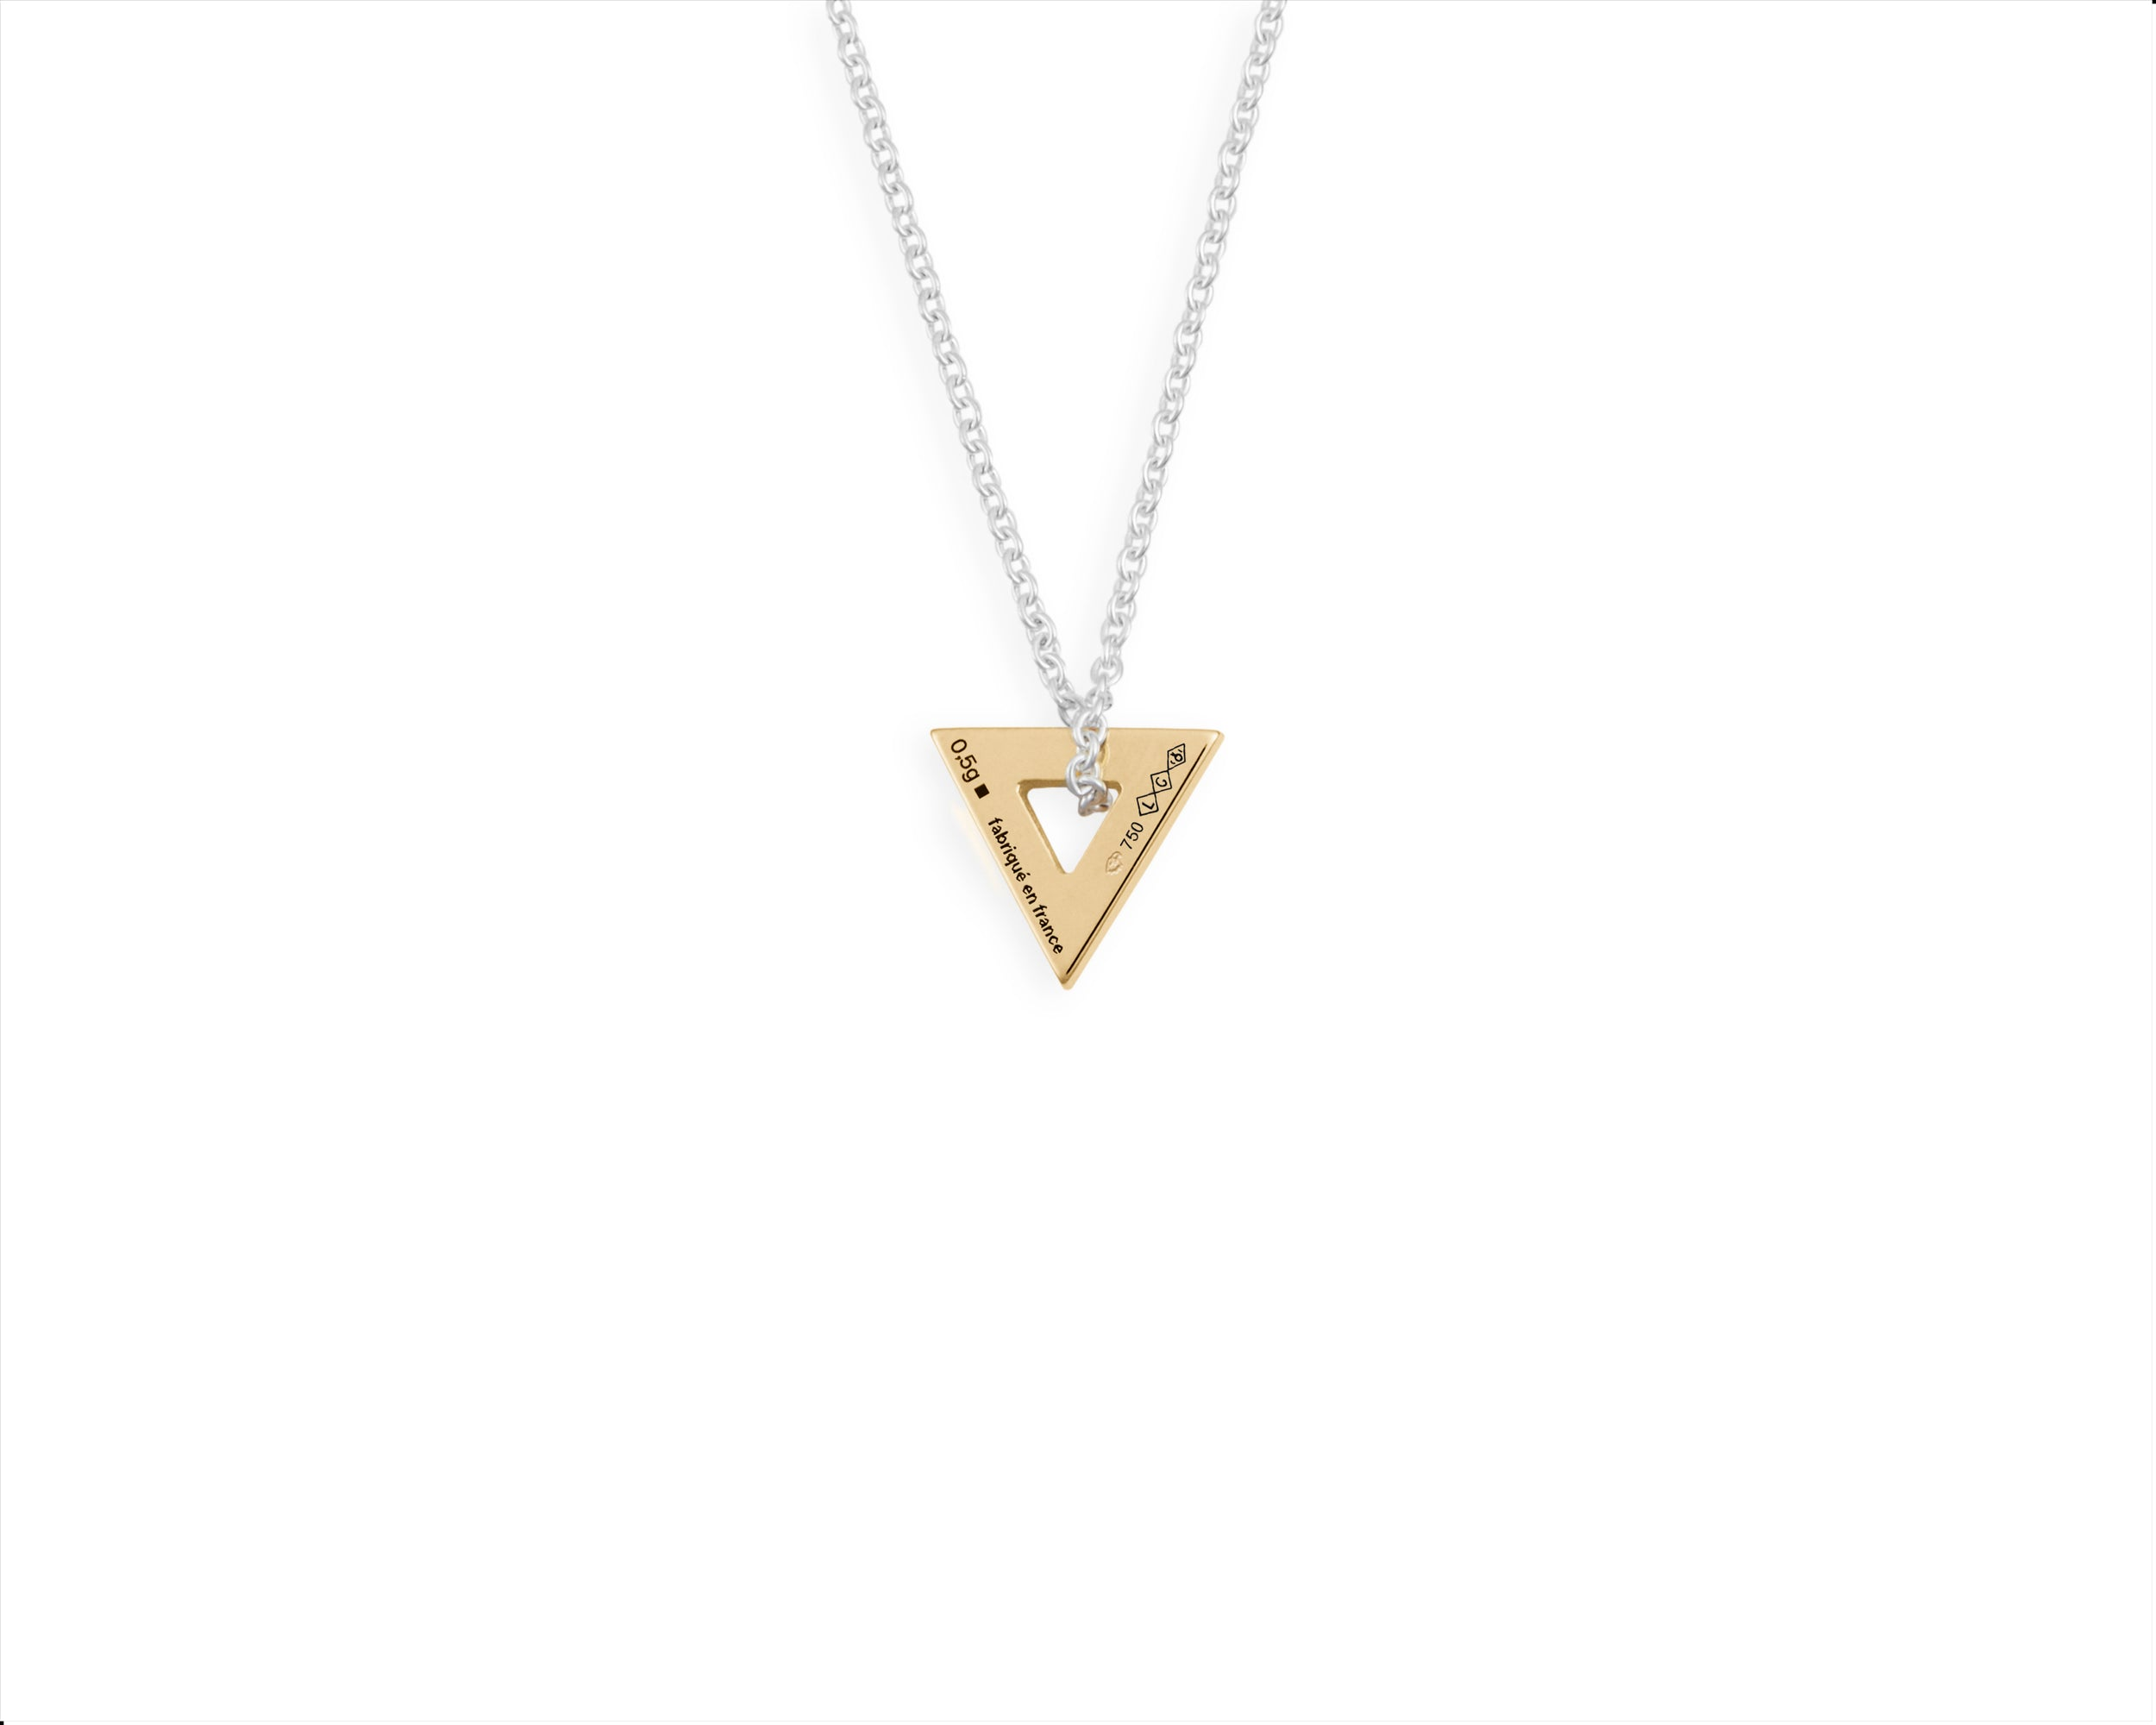 collier triangle le 0,5g